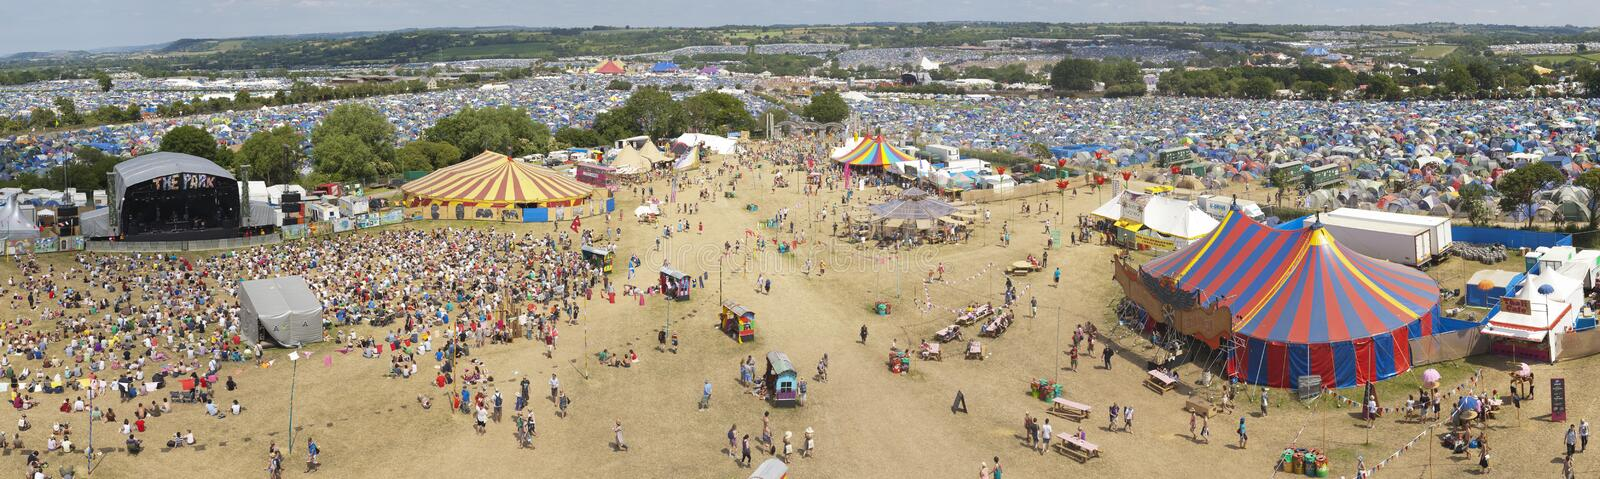 Panoramic View Of The Glastonbury Festival Site Editorial Image